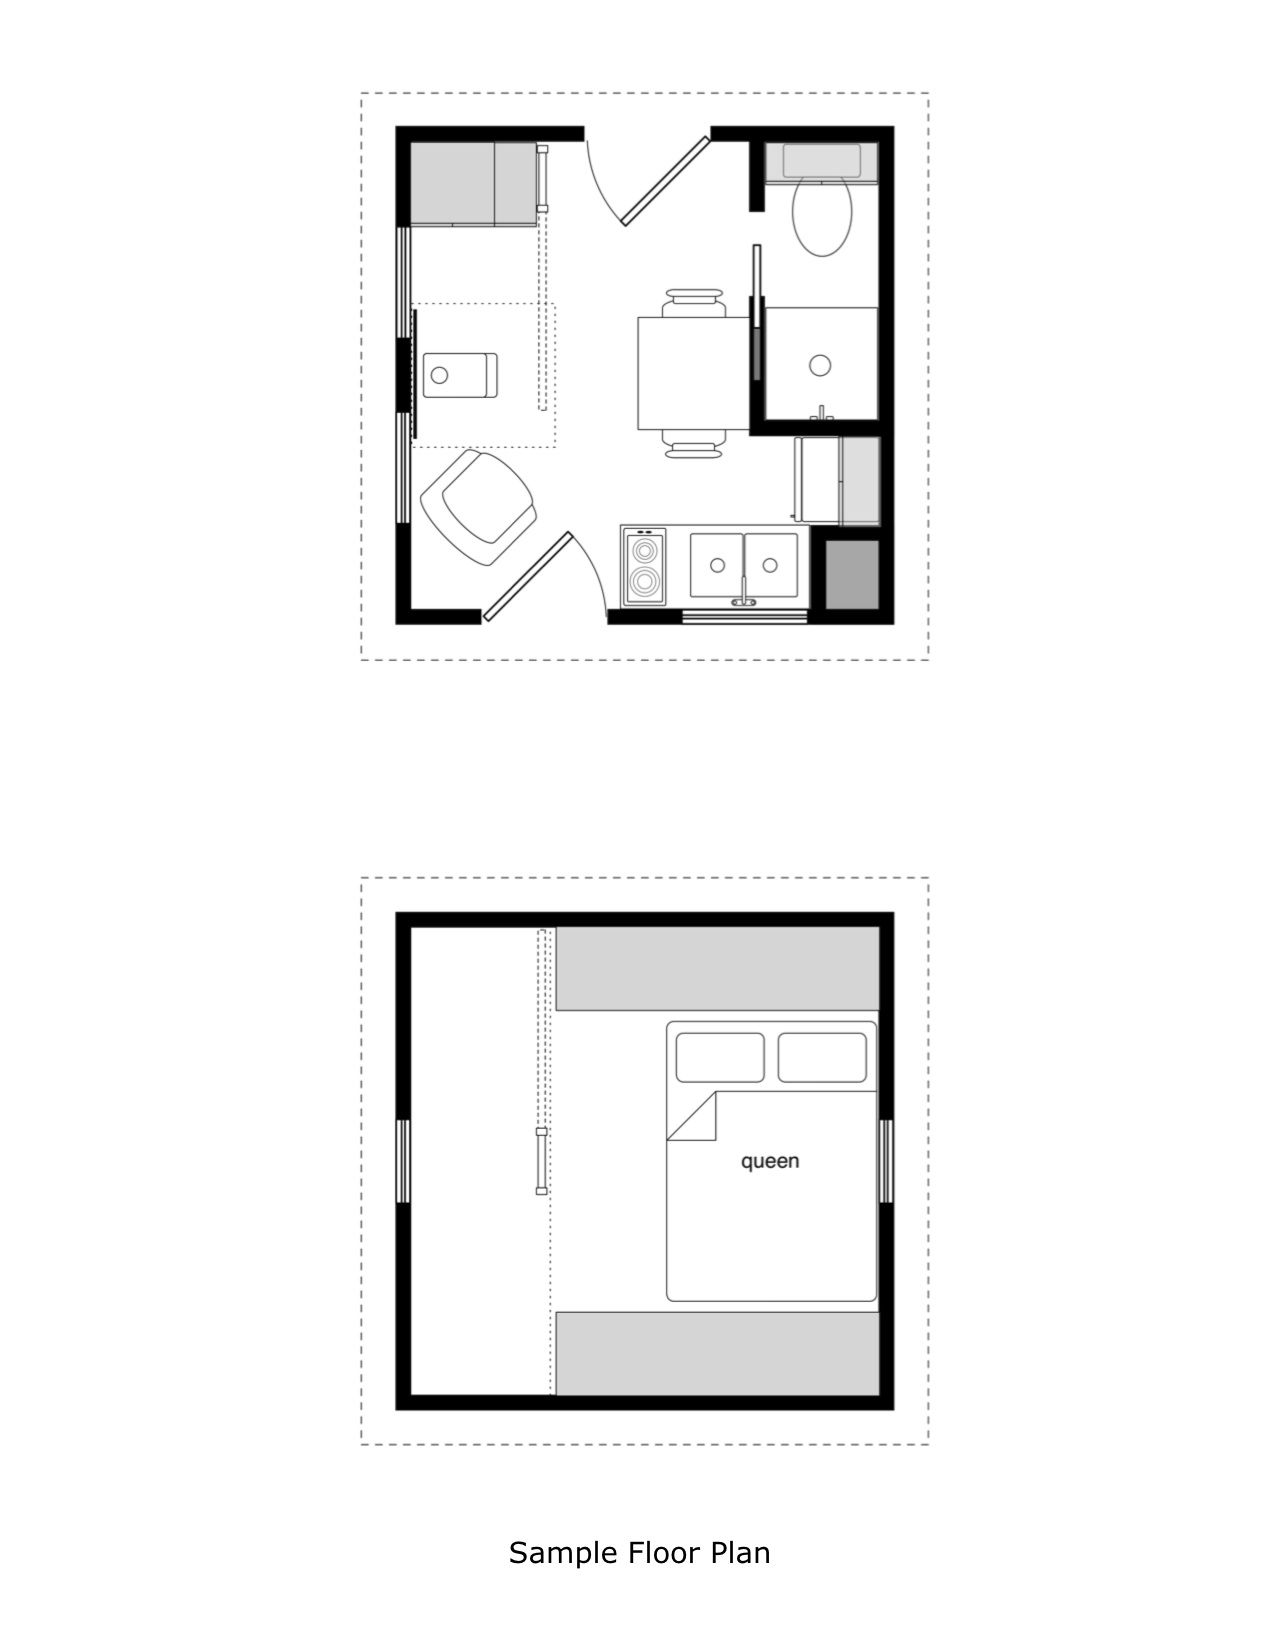 House design samples layout